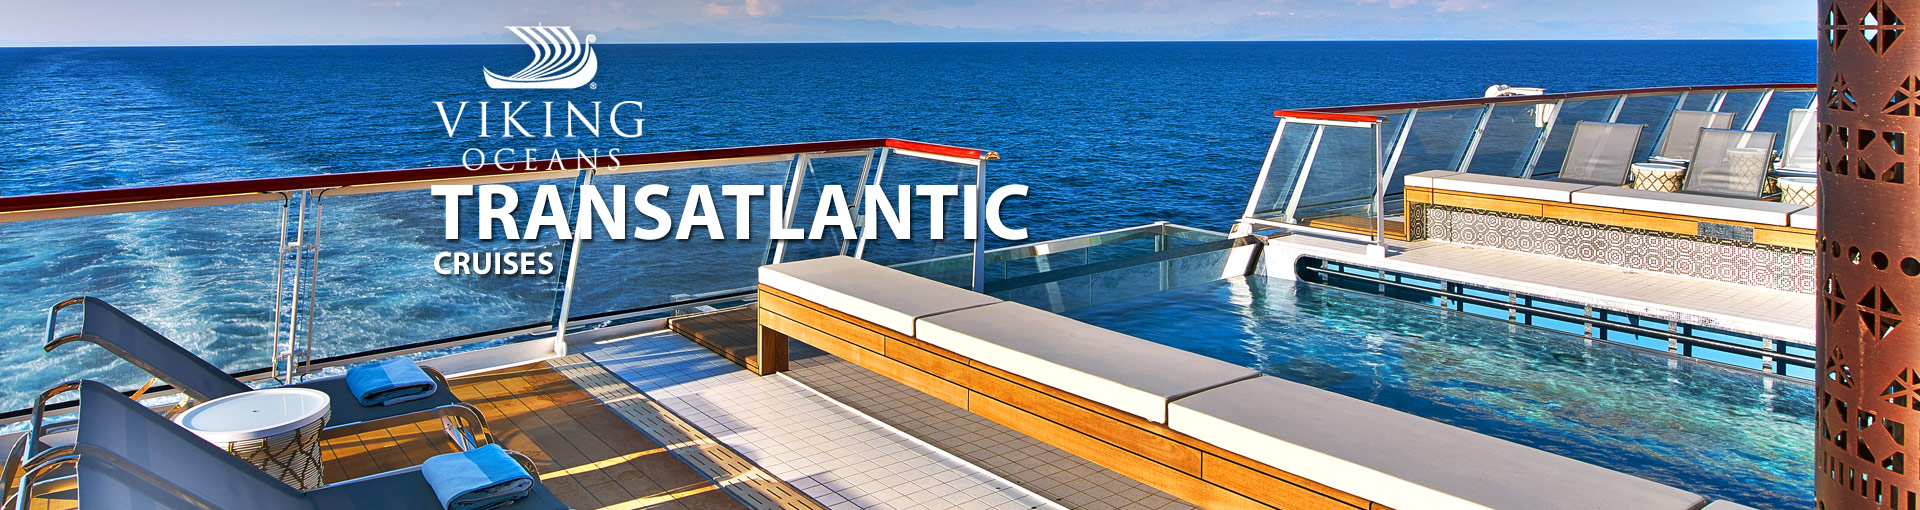 Viking Oceans Transatlantic Cruises